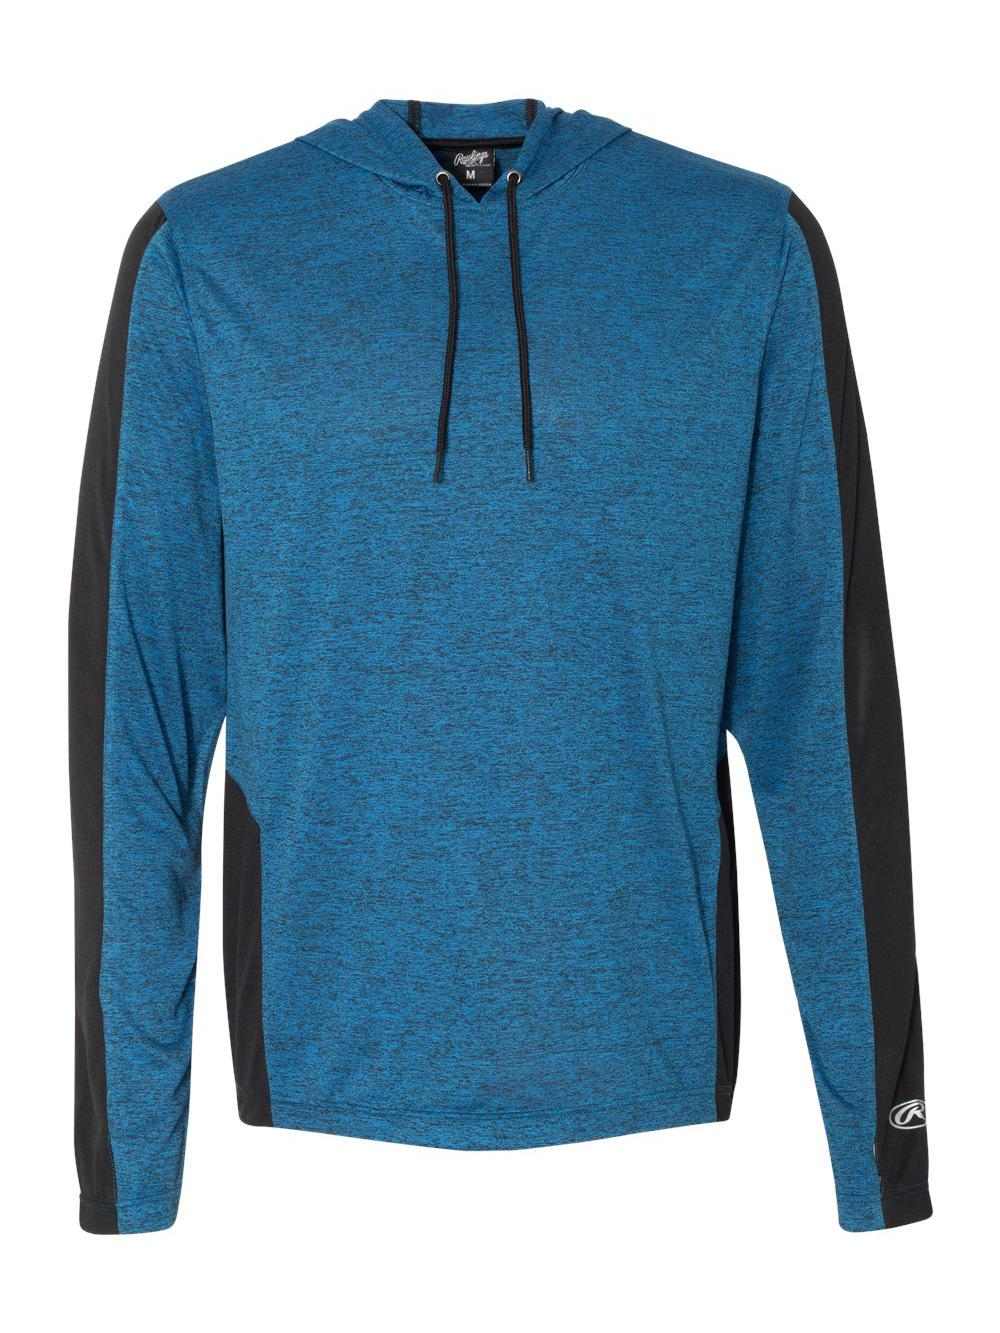 Rawlings-Performance-Cationic-Hooded-Pullover-T-Shirt-8199 thumbnail 9